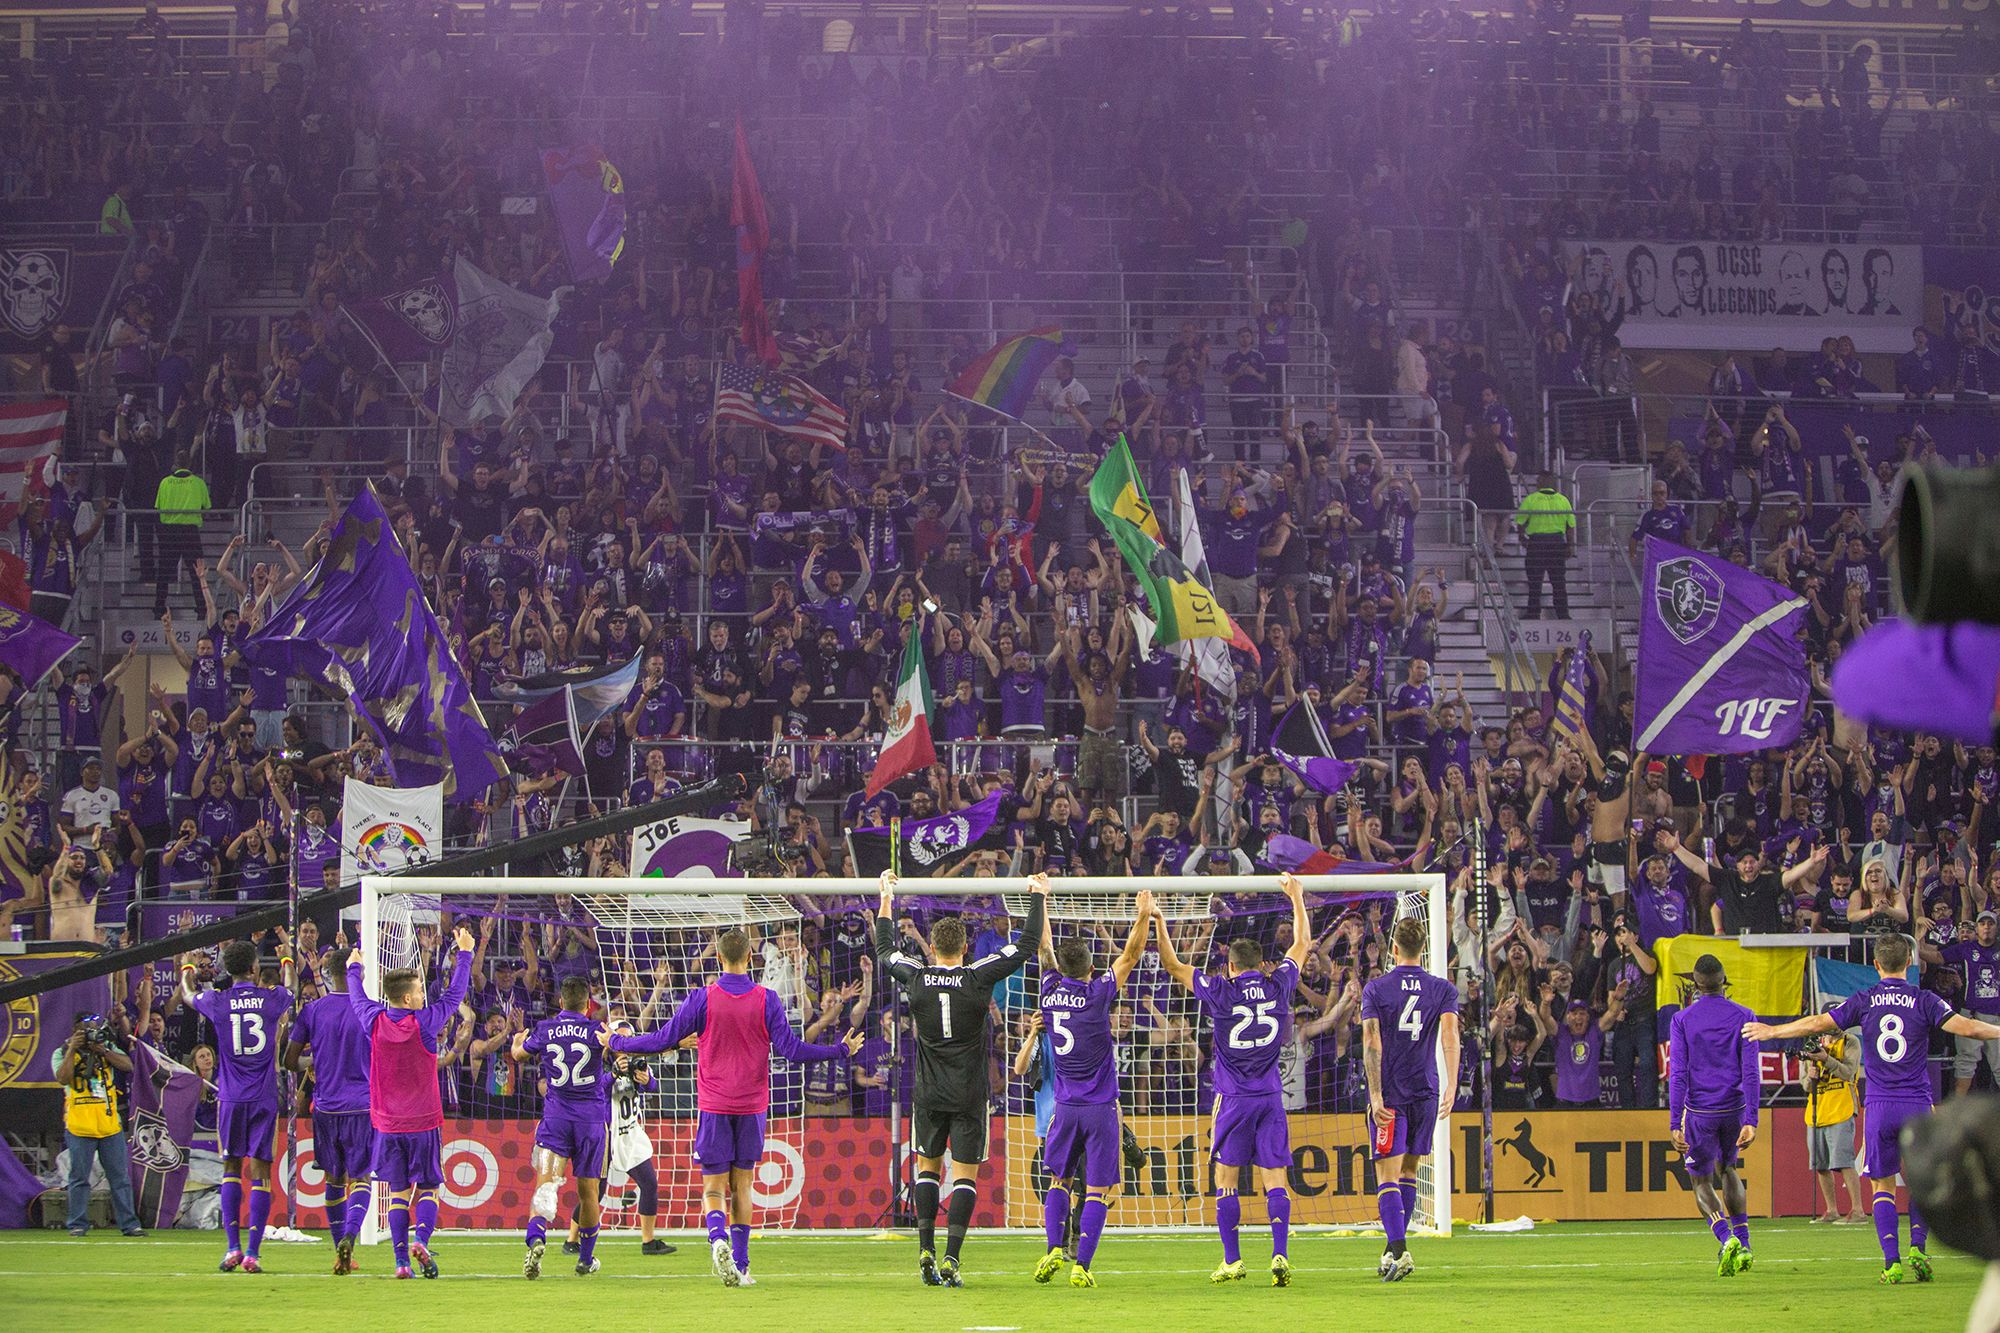 Orlando City players celebrate with supporters after a match.